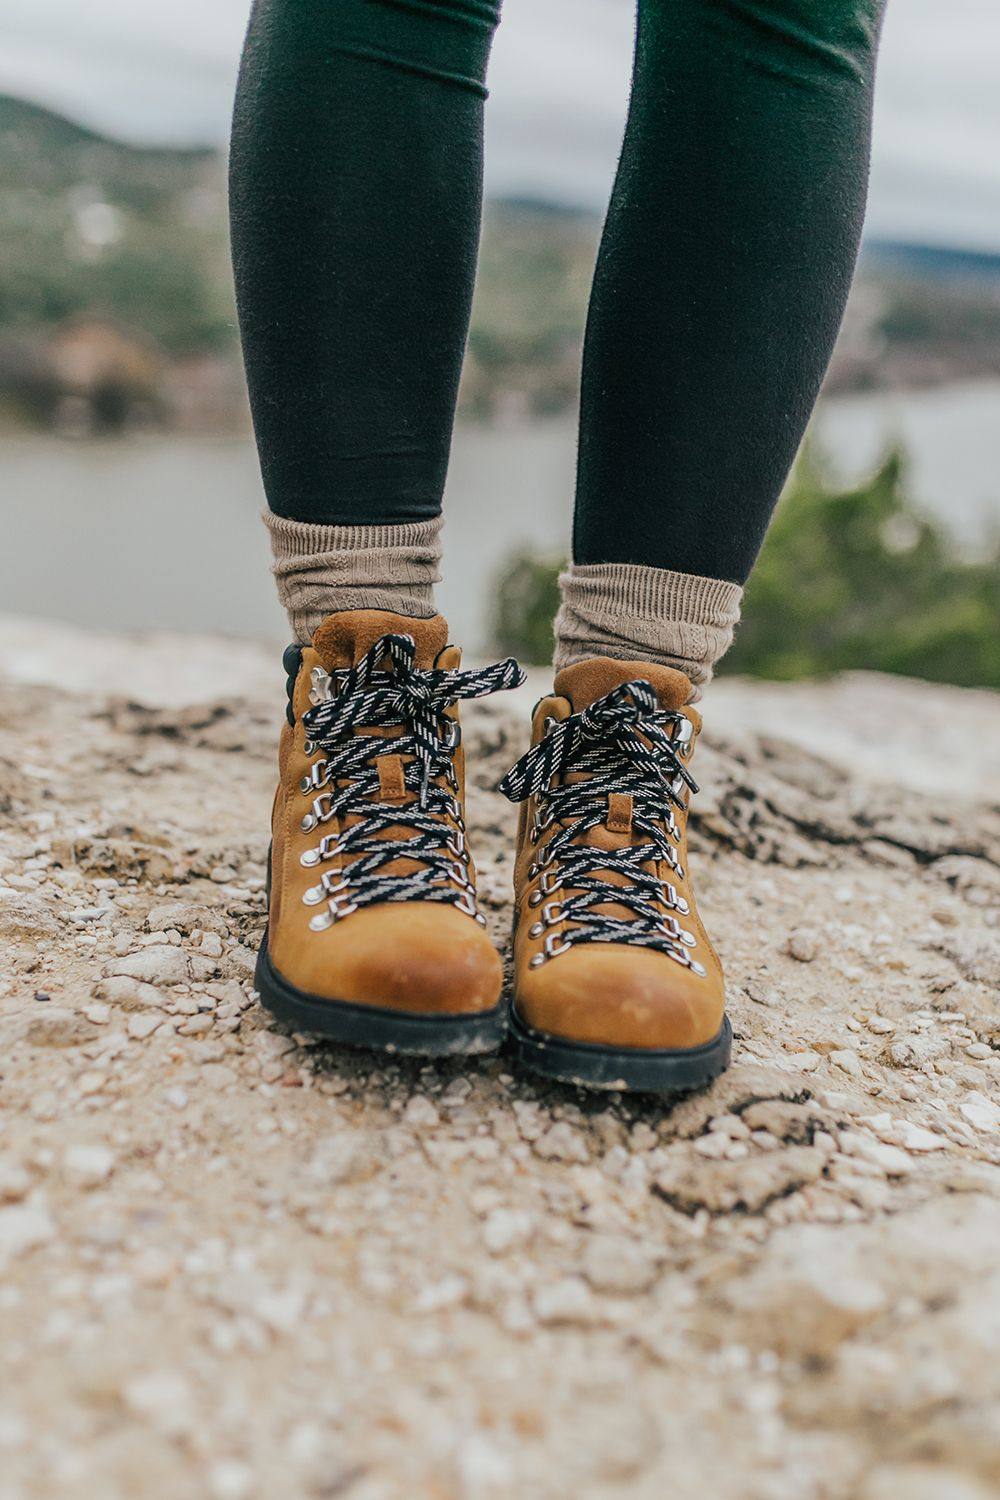 Hiking boots outfit